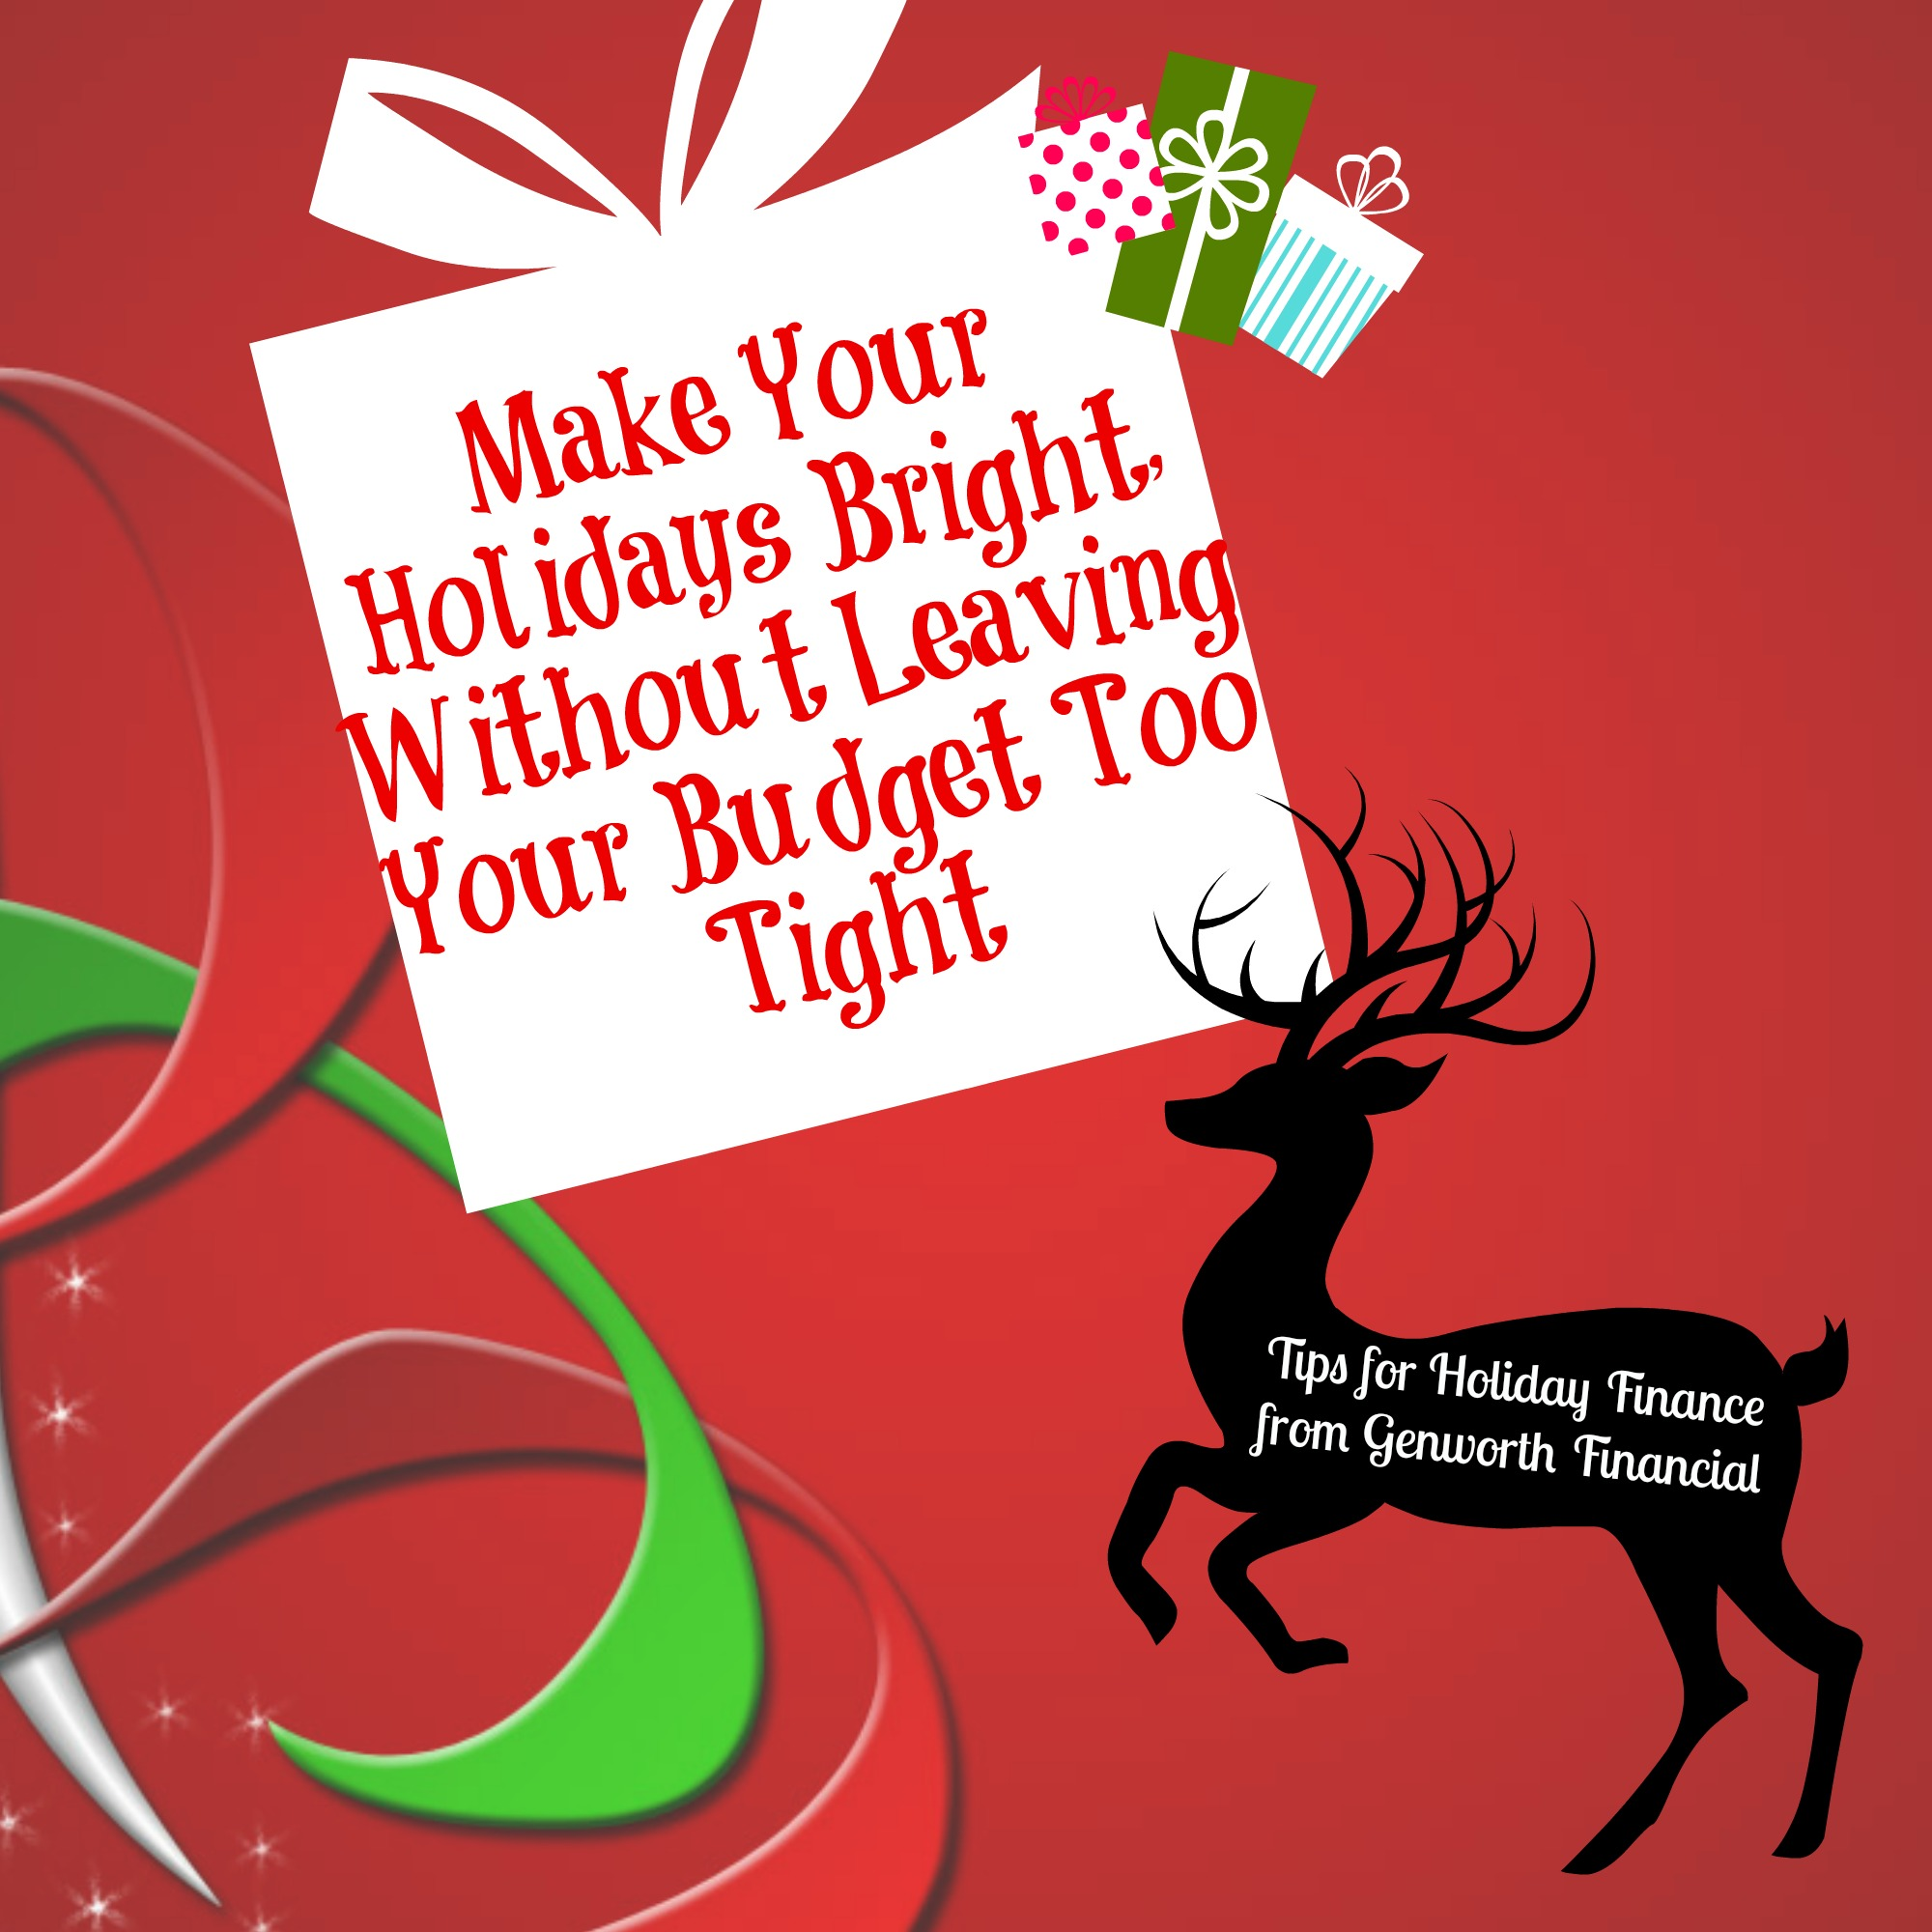 Tips for Holiday Finance: Make Your Holidays Bright Without Leaving Your Budget Too Tight